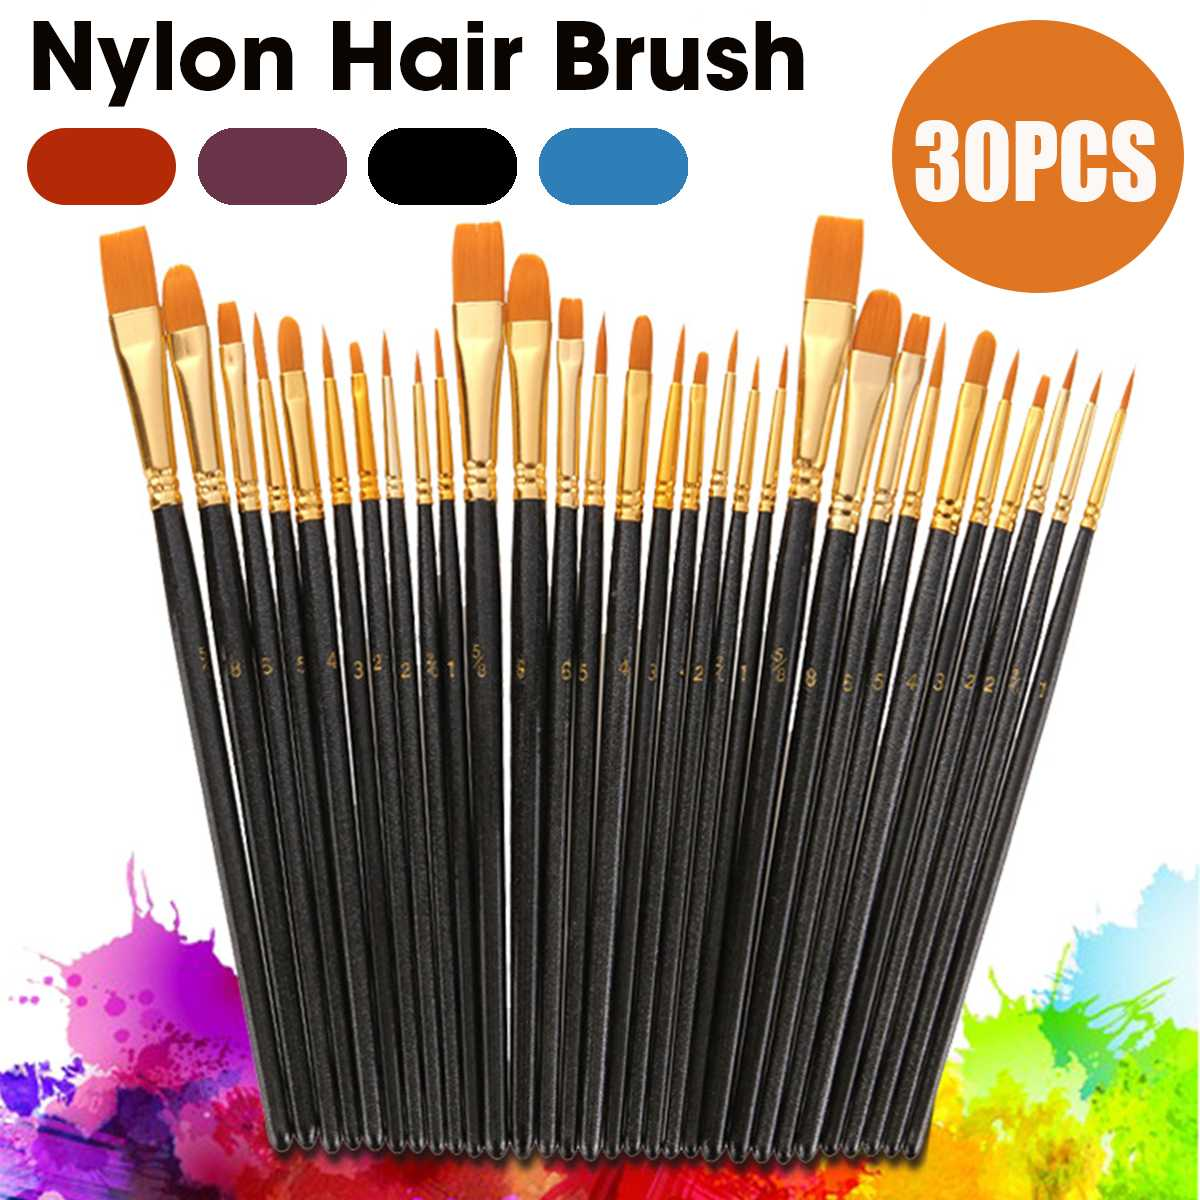 Paint Brushes Nylon Wooden Handle Watercolor Paint Brush Pen Set Learning DIY Acrylic Painting Art Paint Brushes Supplies 30PCS